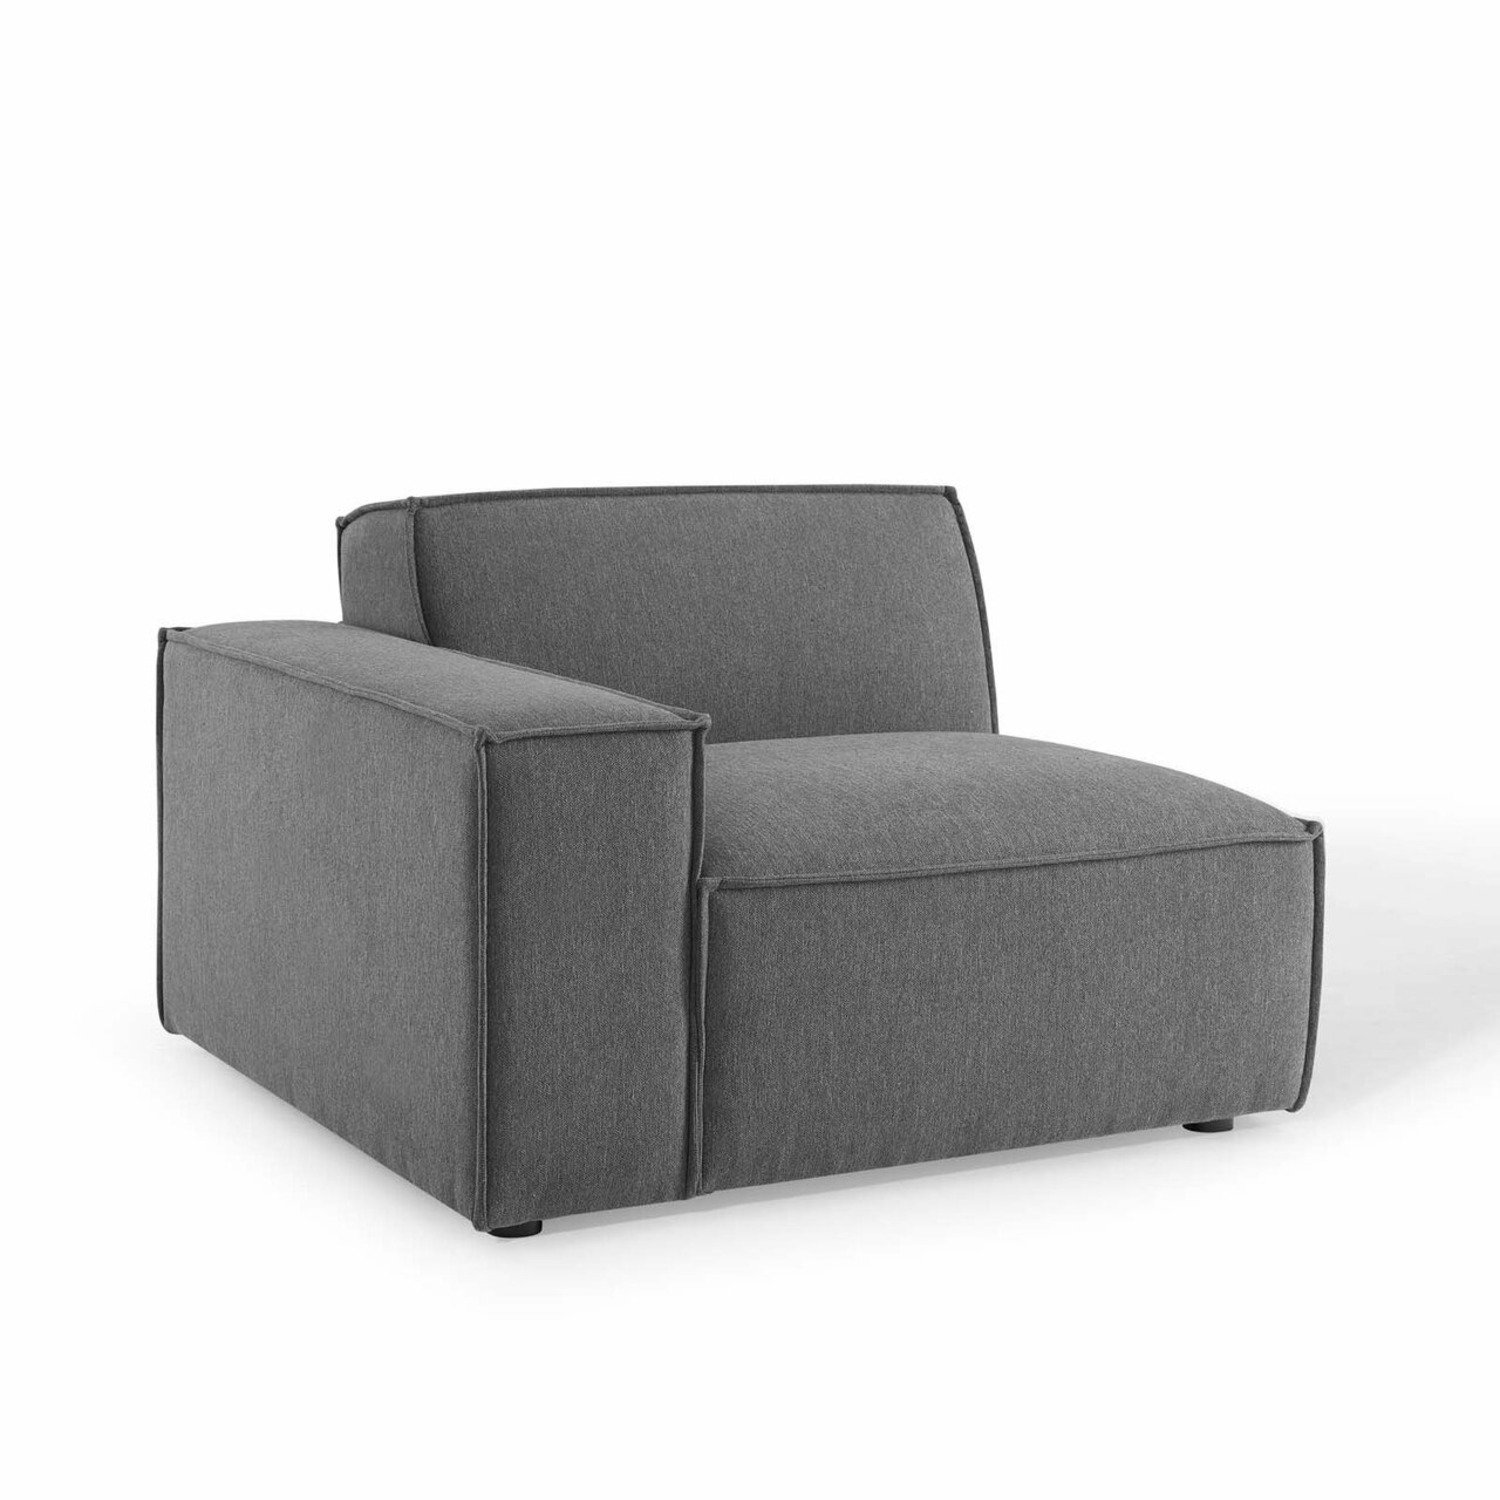 8-Piece Sectional Sofa In Charcoal Fabric Finish - image-3